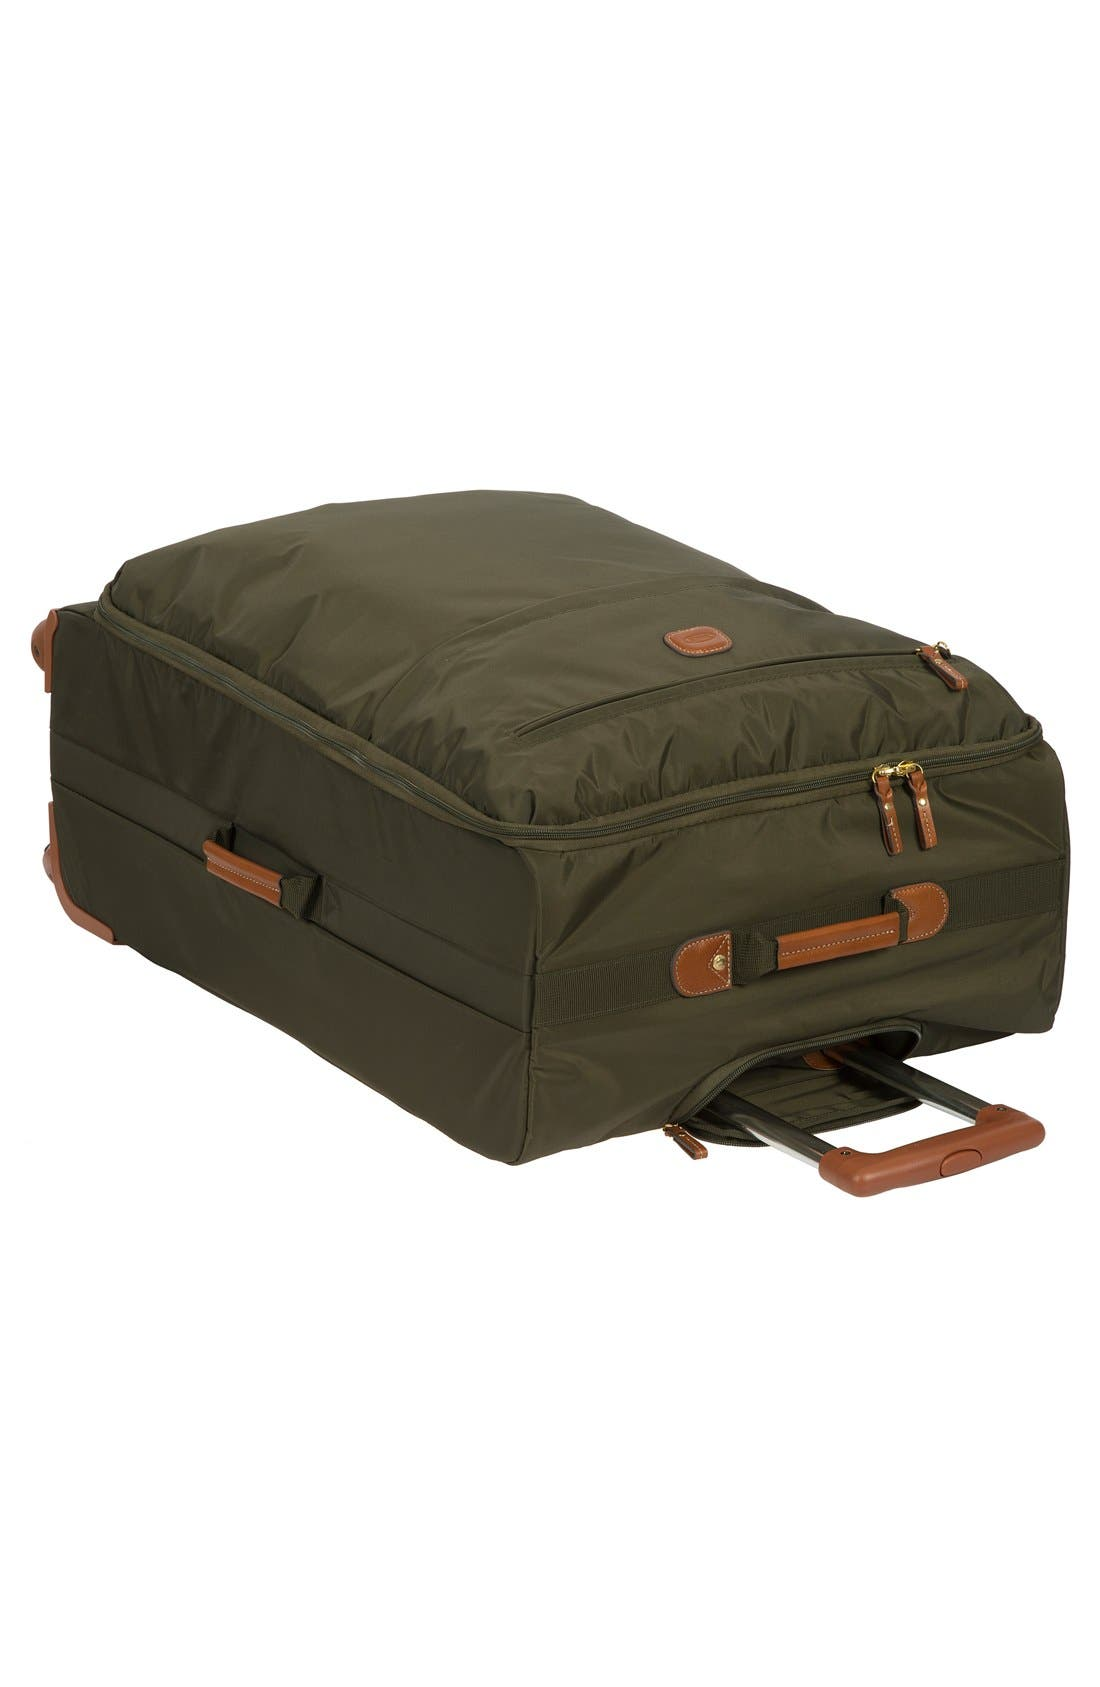 X-Bag 30-Inch Spinner Suitcase,                             Alternate thumbnail 8, color,                             OLIVE